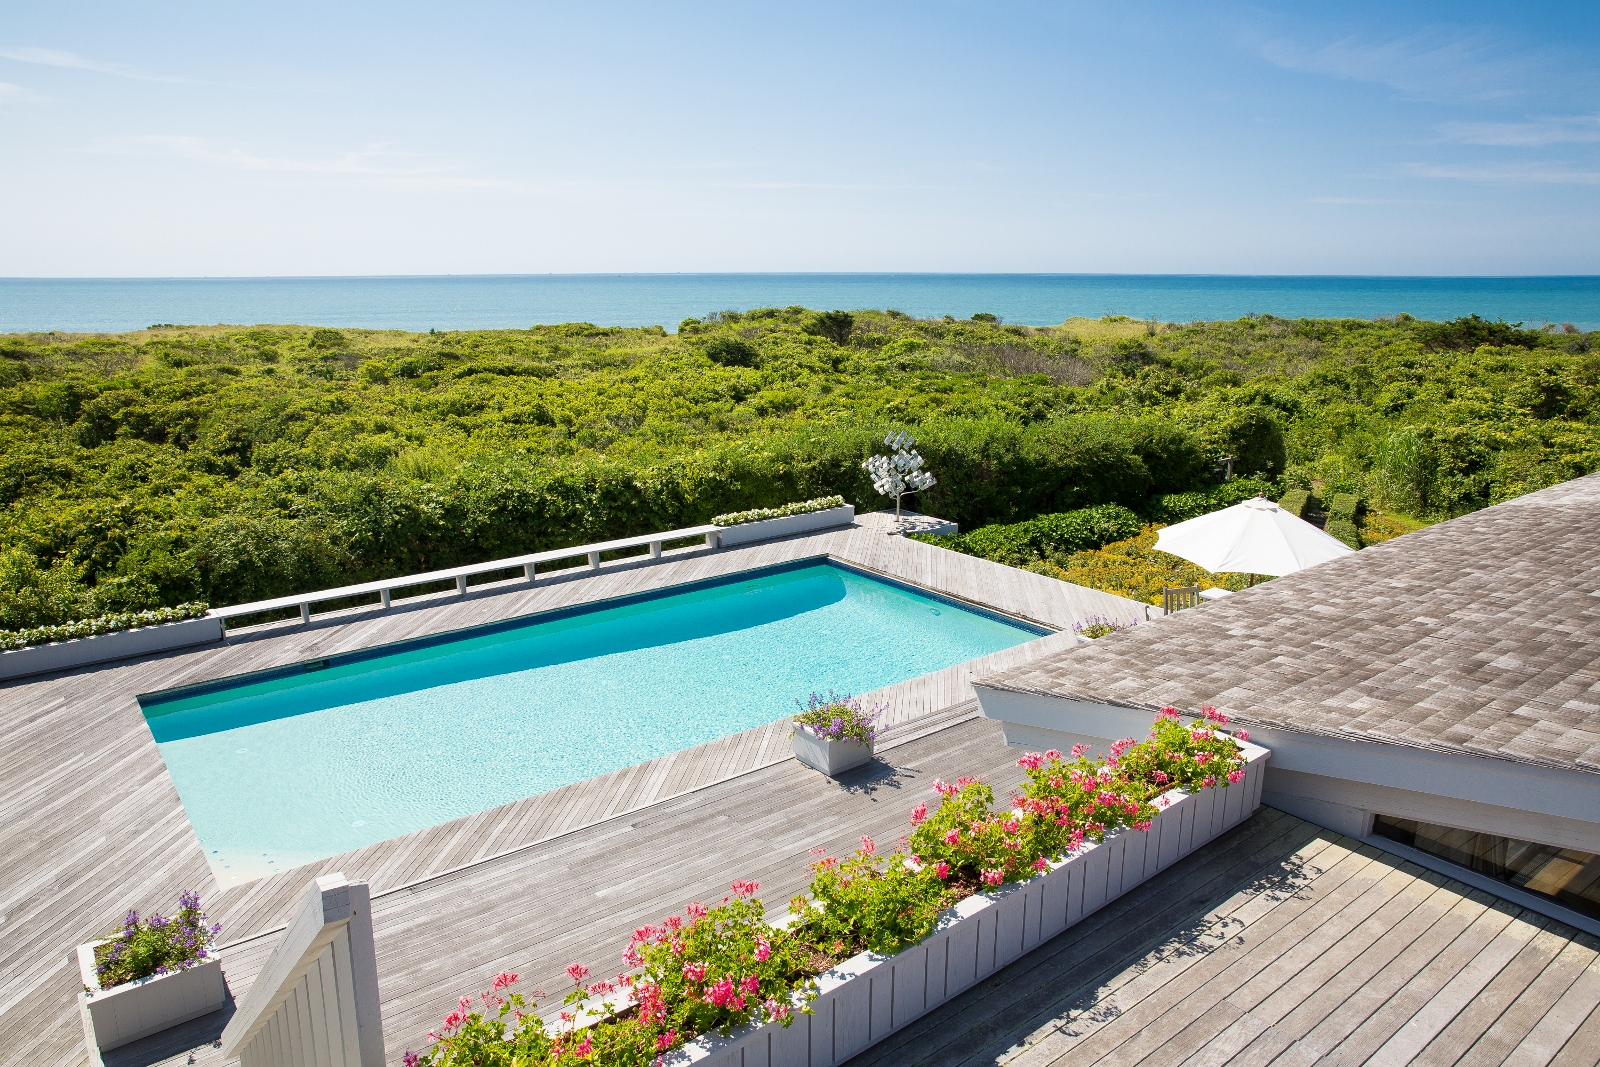 Casa Unifamiliar por un Venta en Waterfront on Lucy Vincent Beach 1 Azalea Lane Chilmark, Massachusetts 02535 Estados Unidos